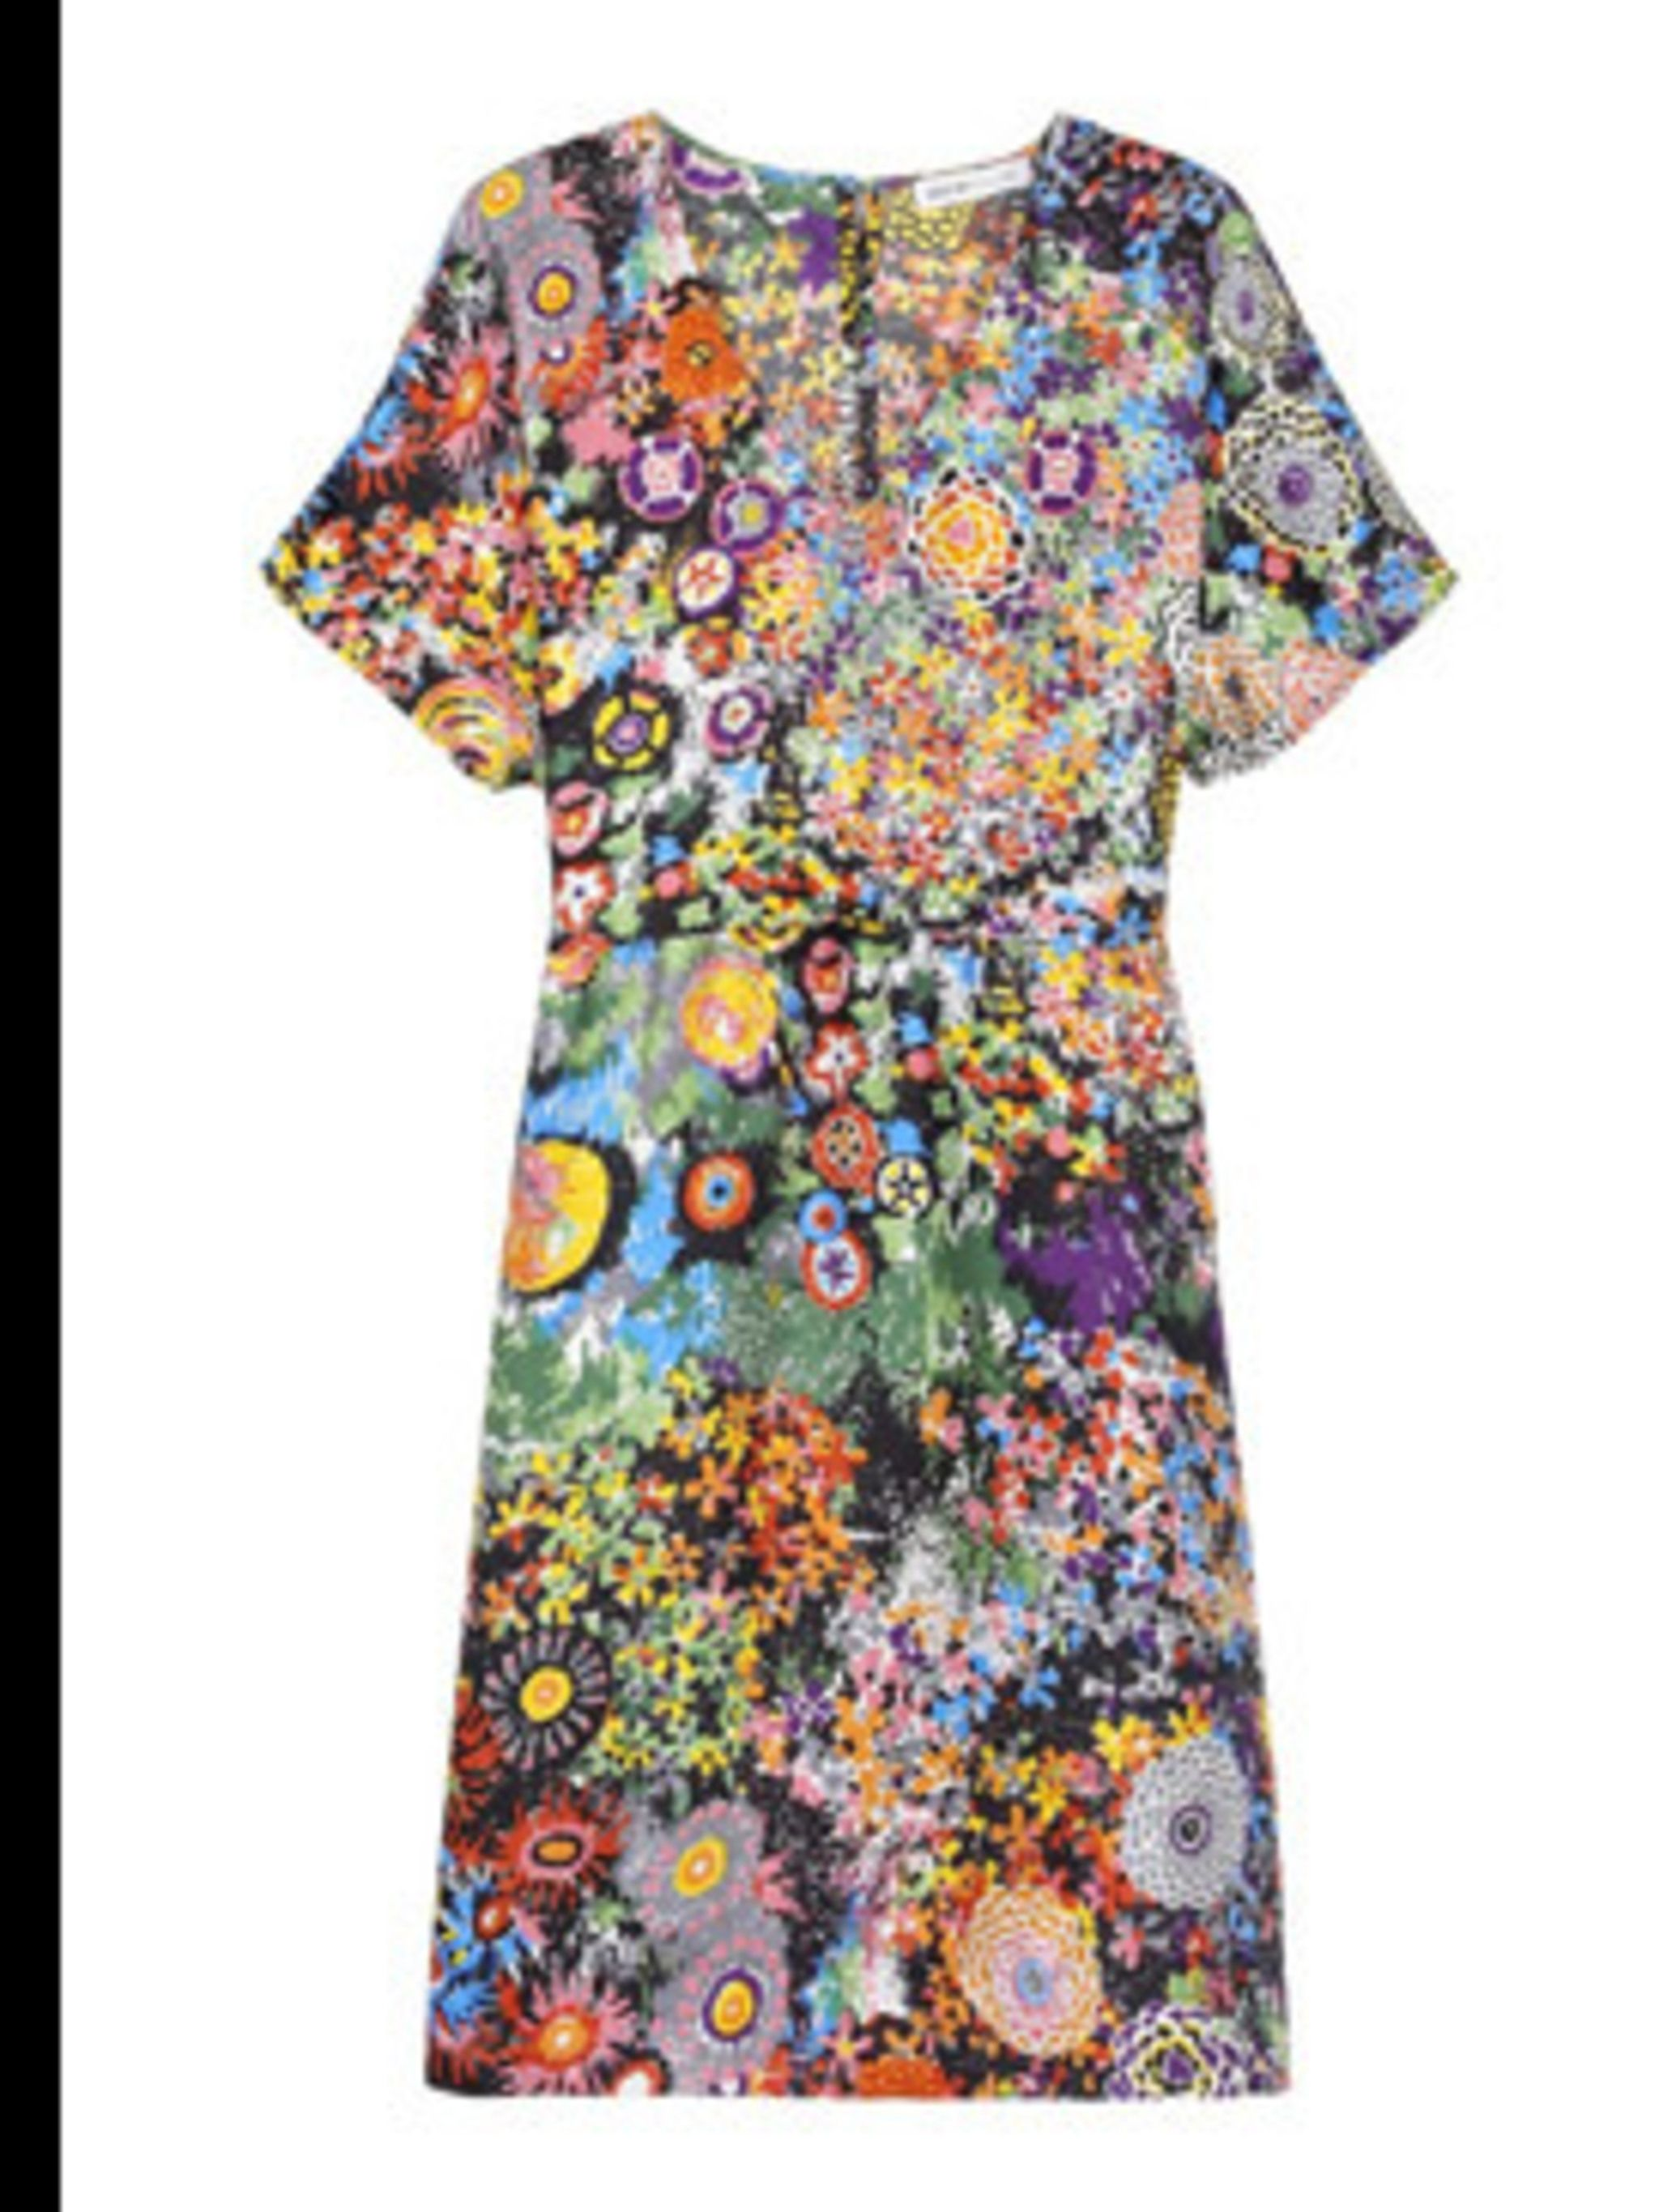 """<p>Silk mini dress, £325, by See By Chloe at <a href=""""http://www.net-a-porter.com/product/41013"""">www.net-a-porter.com</a></p>"""